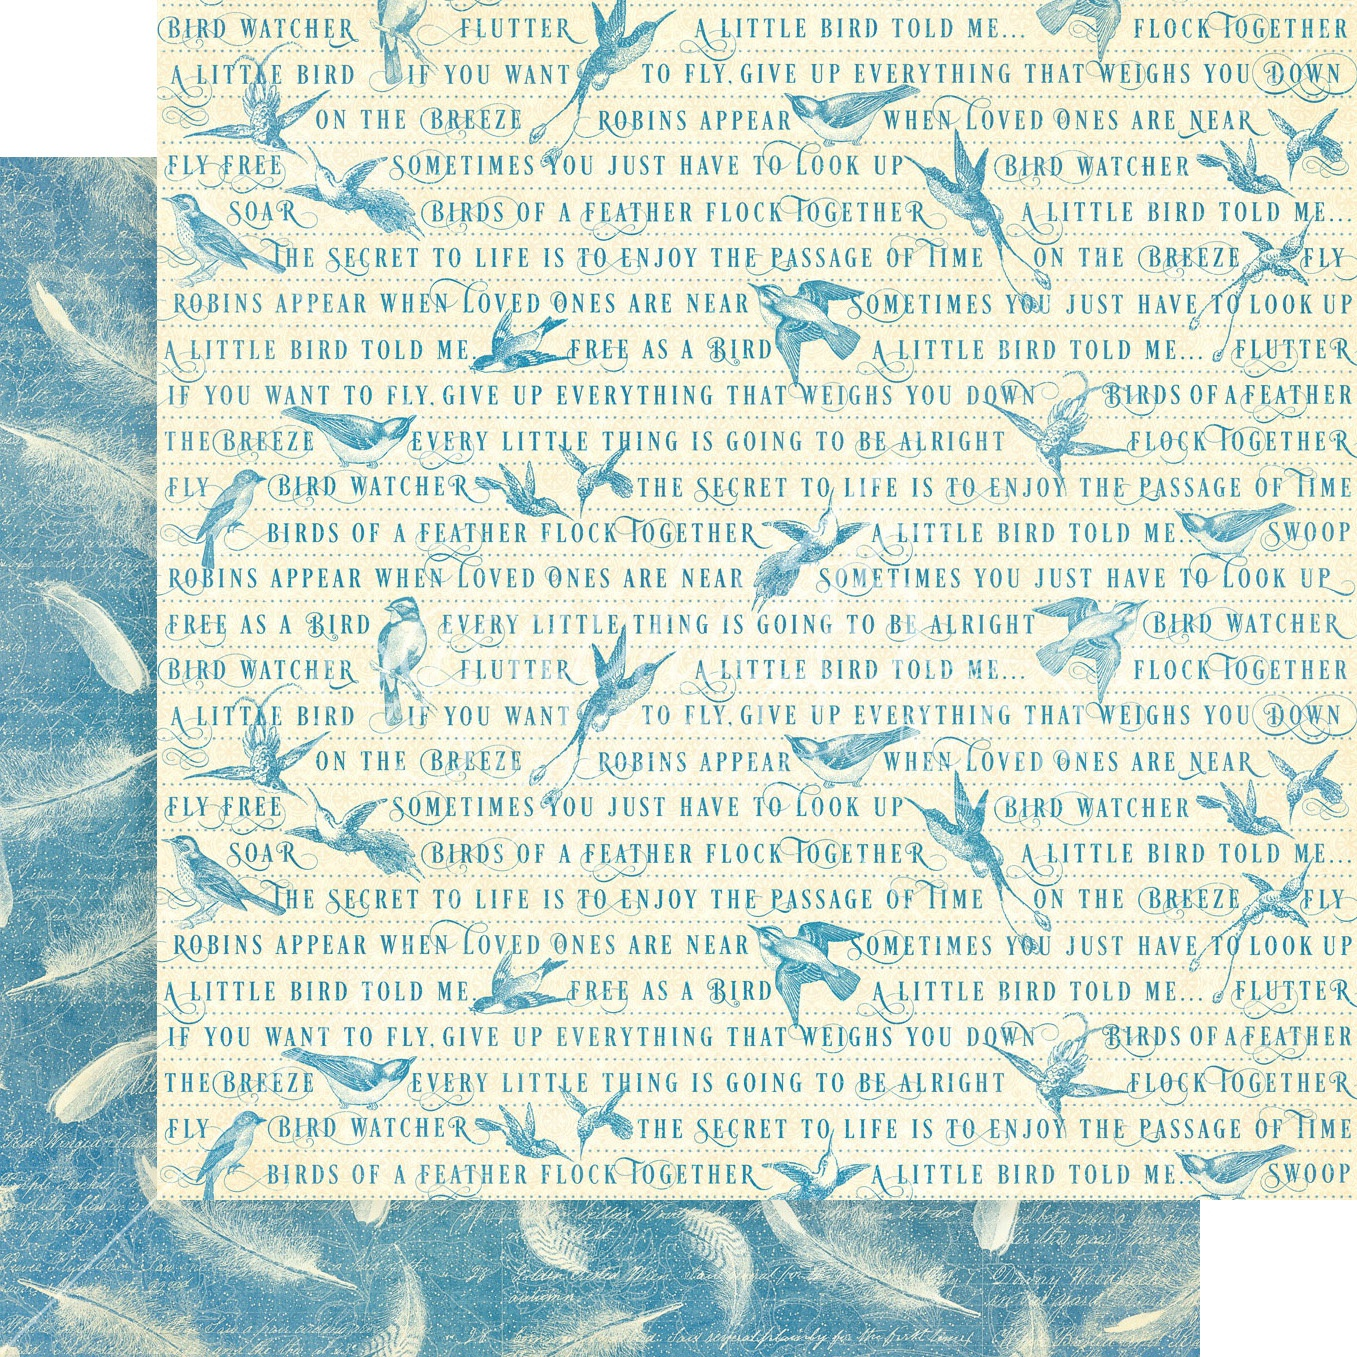 Bird Watcher Double-Sided Cardstock - Feather Your Nest 12x12